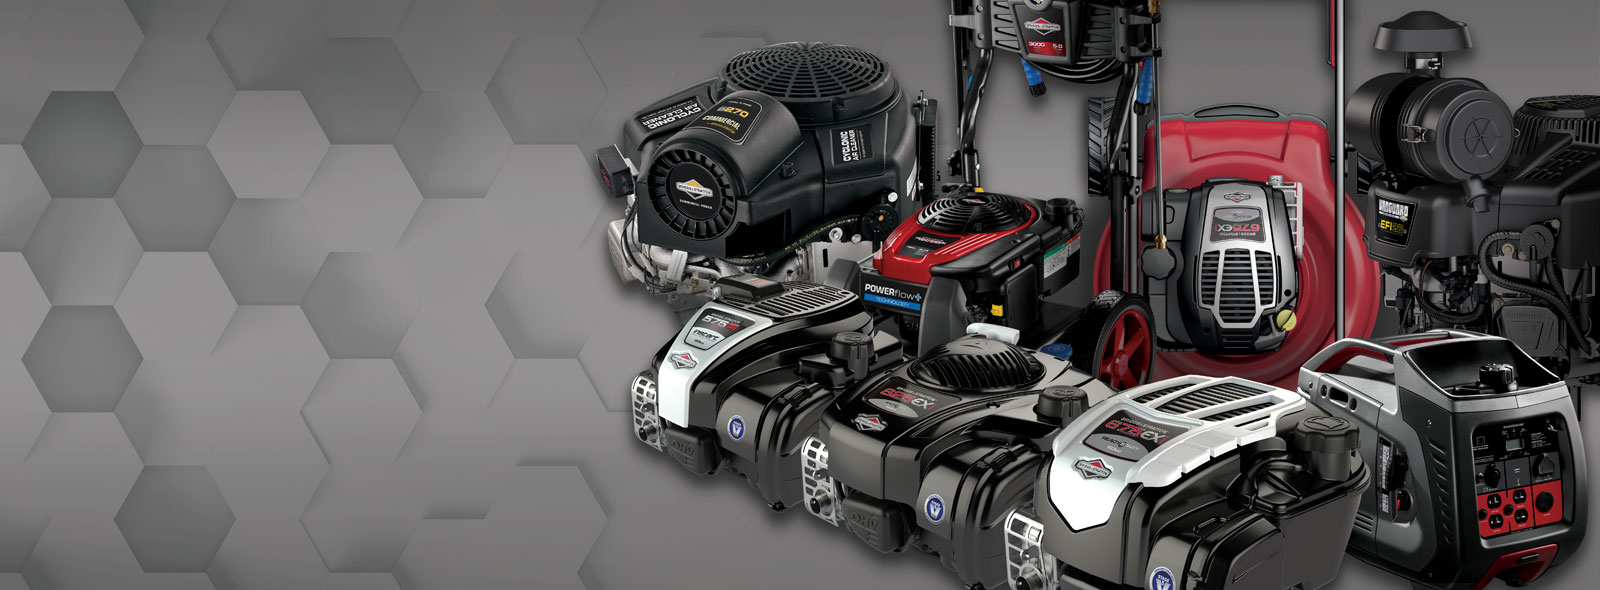 Innovations by Briggs & Stratton